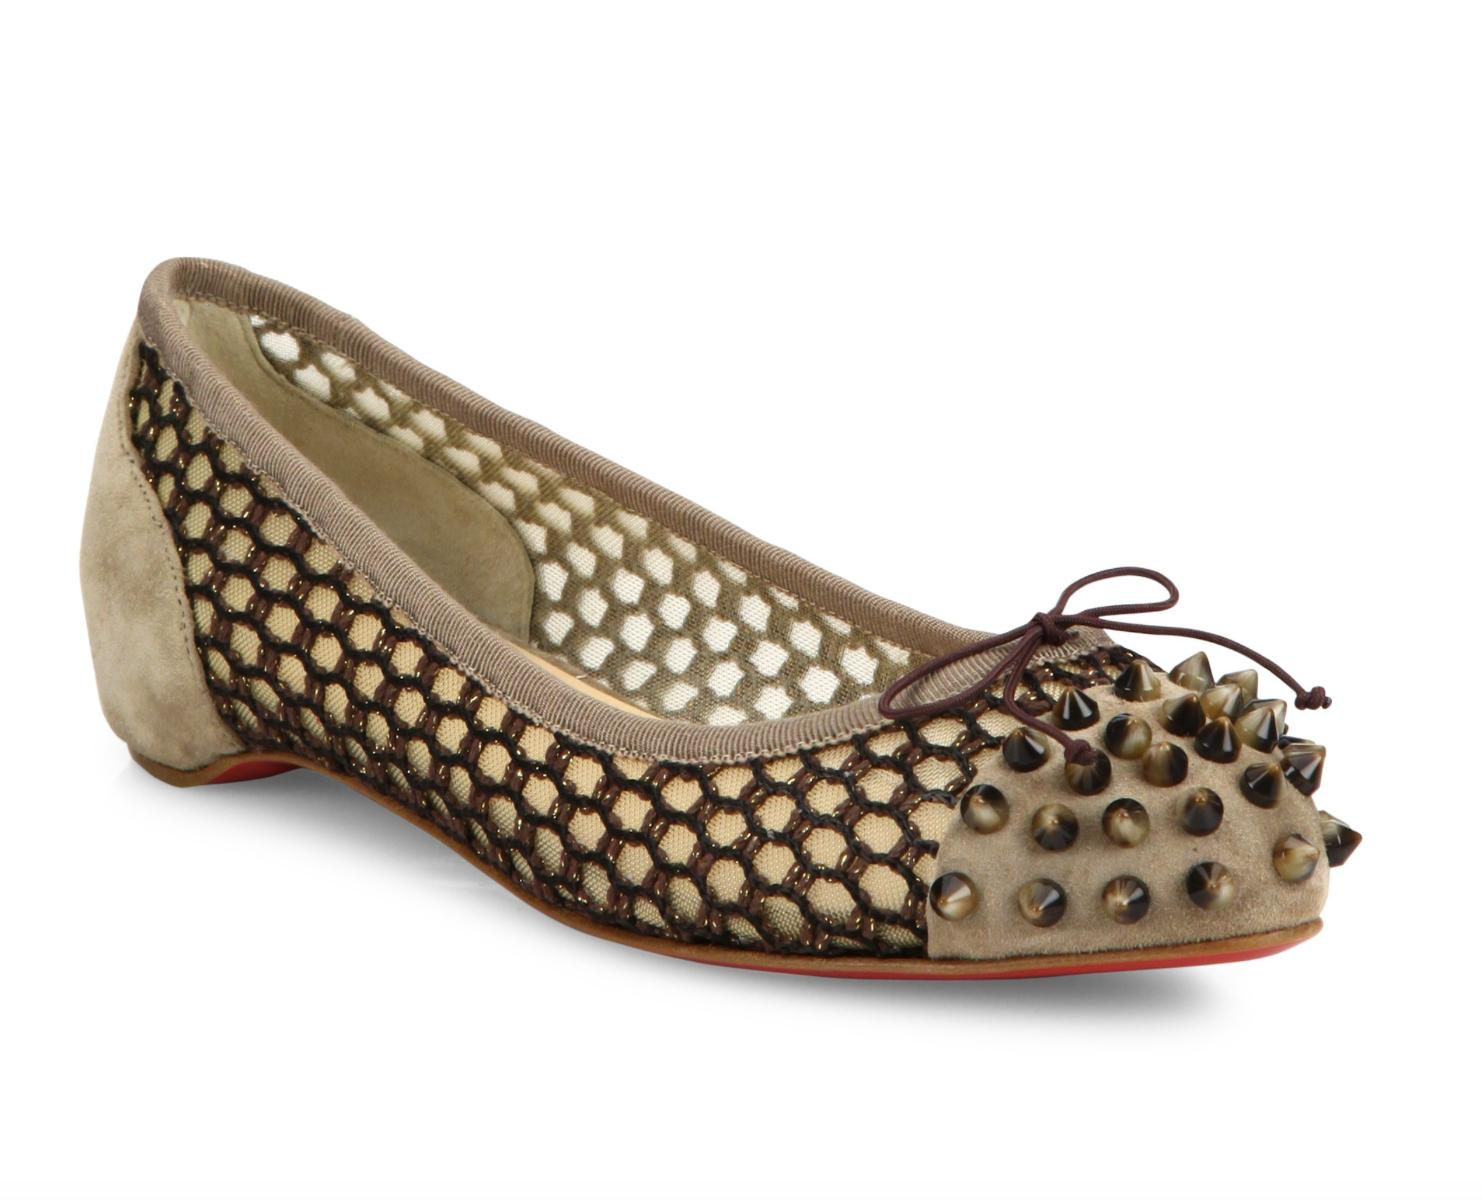 Christian Louboutin Tan Mix Brown Spike Mesh Round A261 Flats Size EU 39 (Approx. US 9) Regular (M, B)